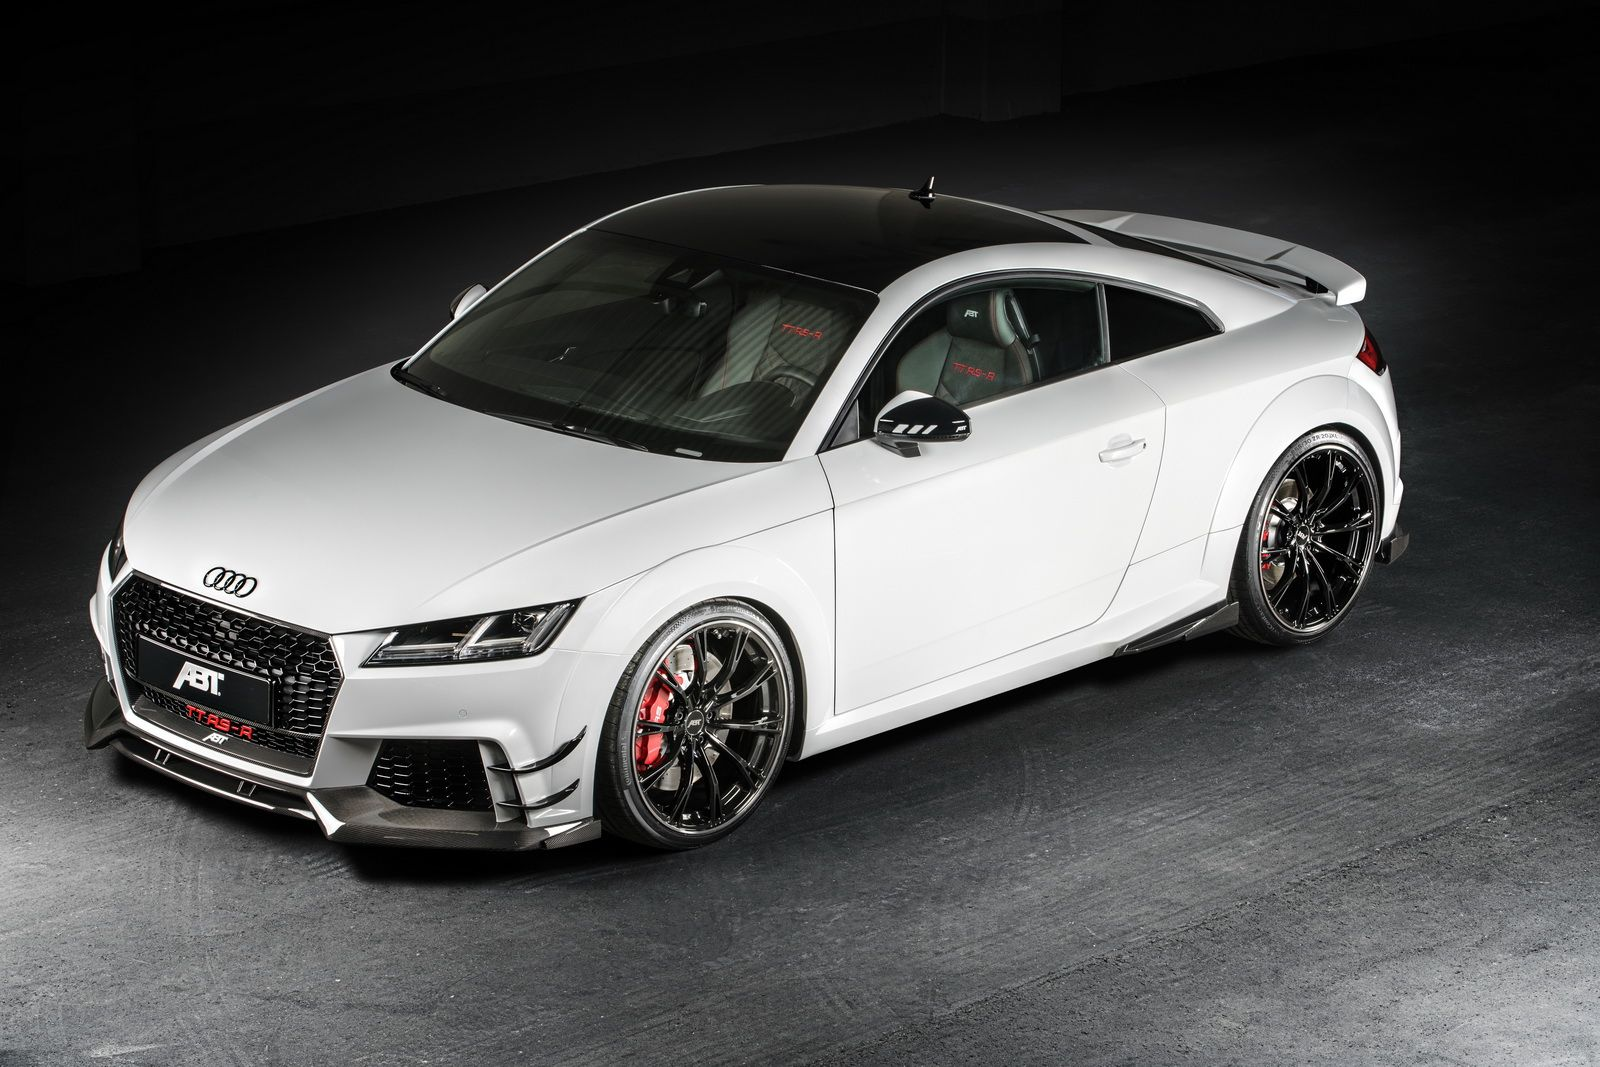 abt presented the audi tt rs r the car s 5 cylinder 2 5 liter turbo rh pinterest com